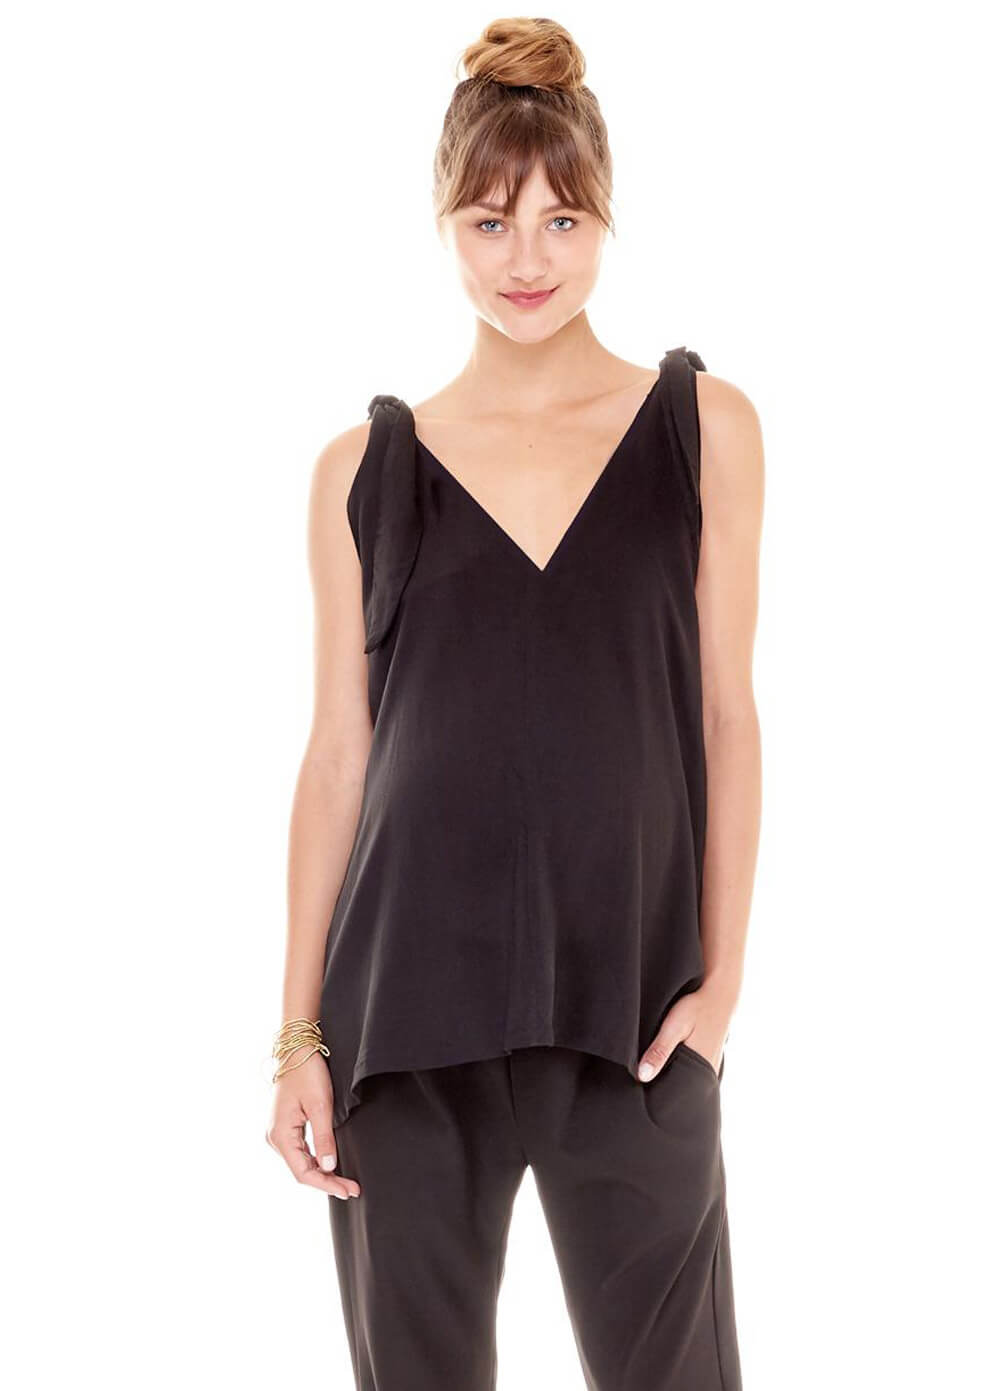 Shyla Maternity Tie Top in Black by Imanimo